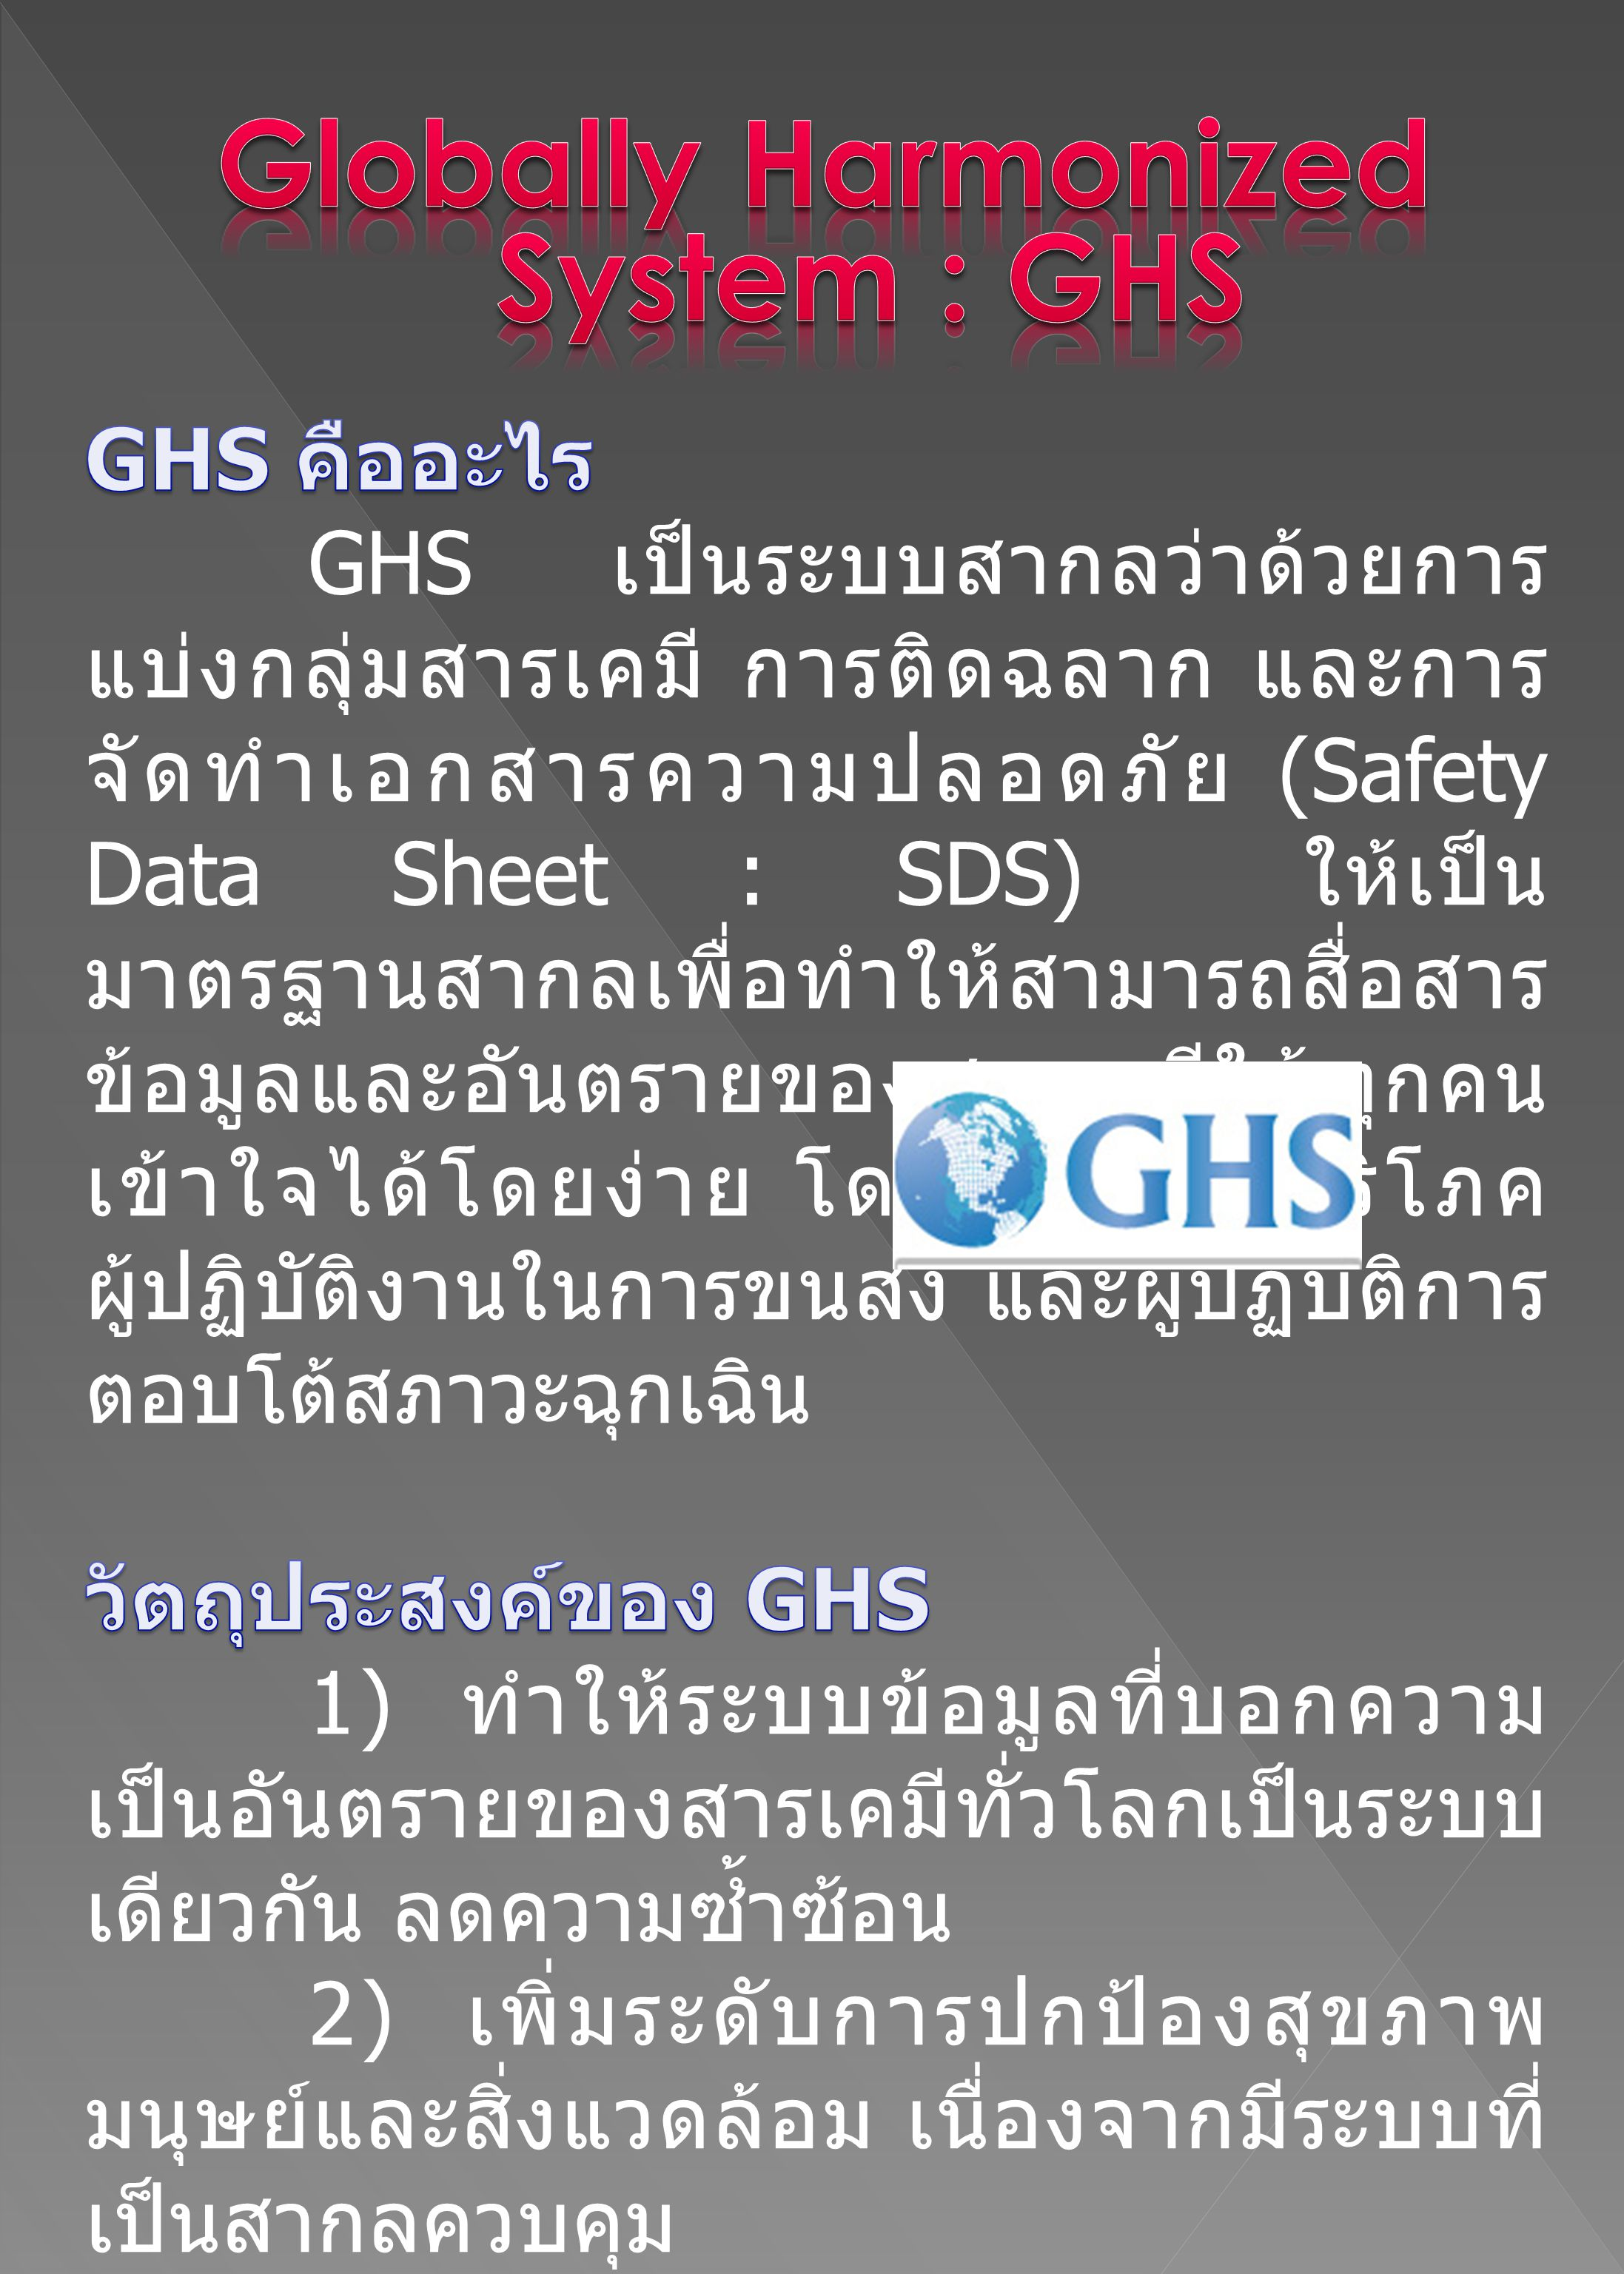 Globally Harmonized System : GHS